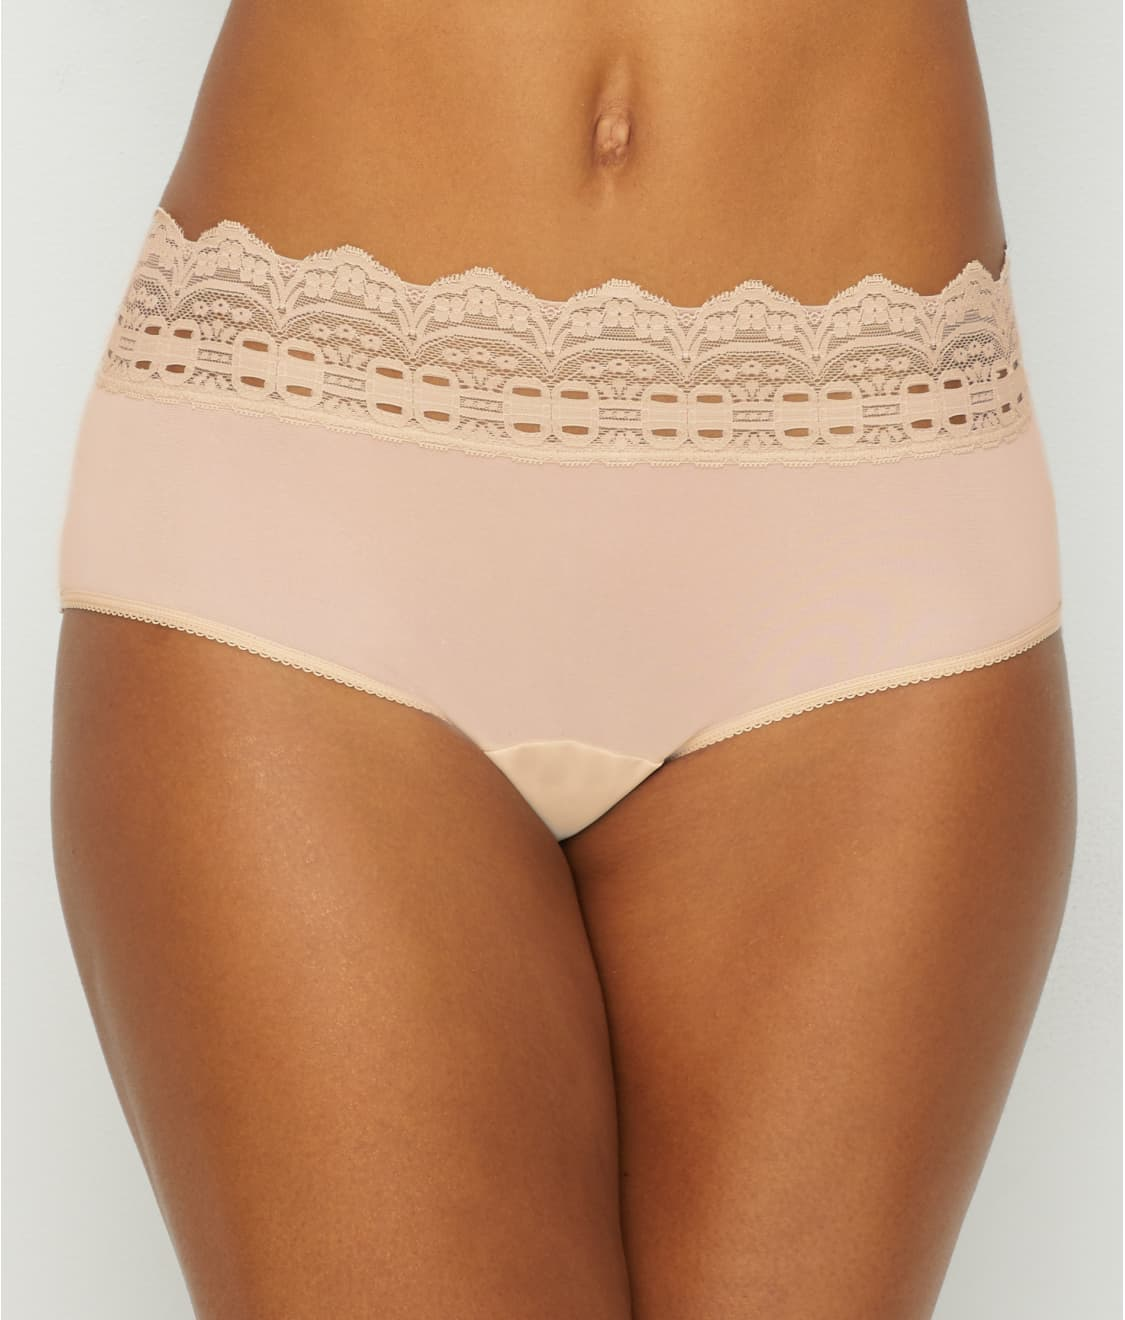 women's bikini panties and underwear | bare necessities